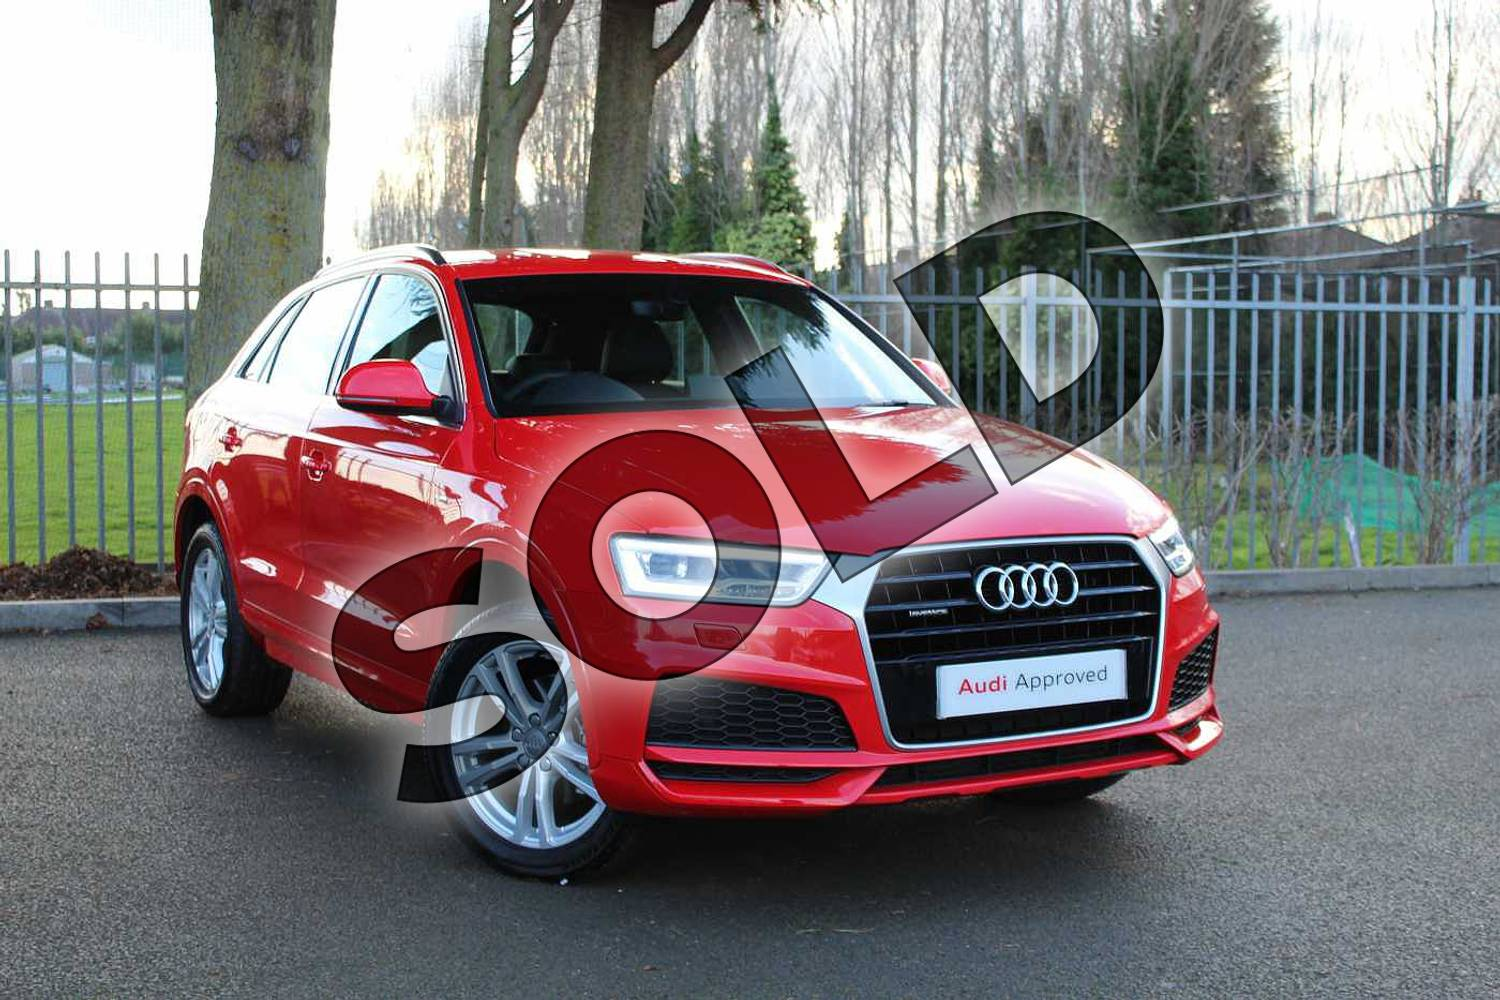 2018 Audi Q3 Estate Special Editions Special Editions 2.0 TDI Quattro S Line Edition 5dr in Misano Red Pearlescent at Coventry Audi